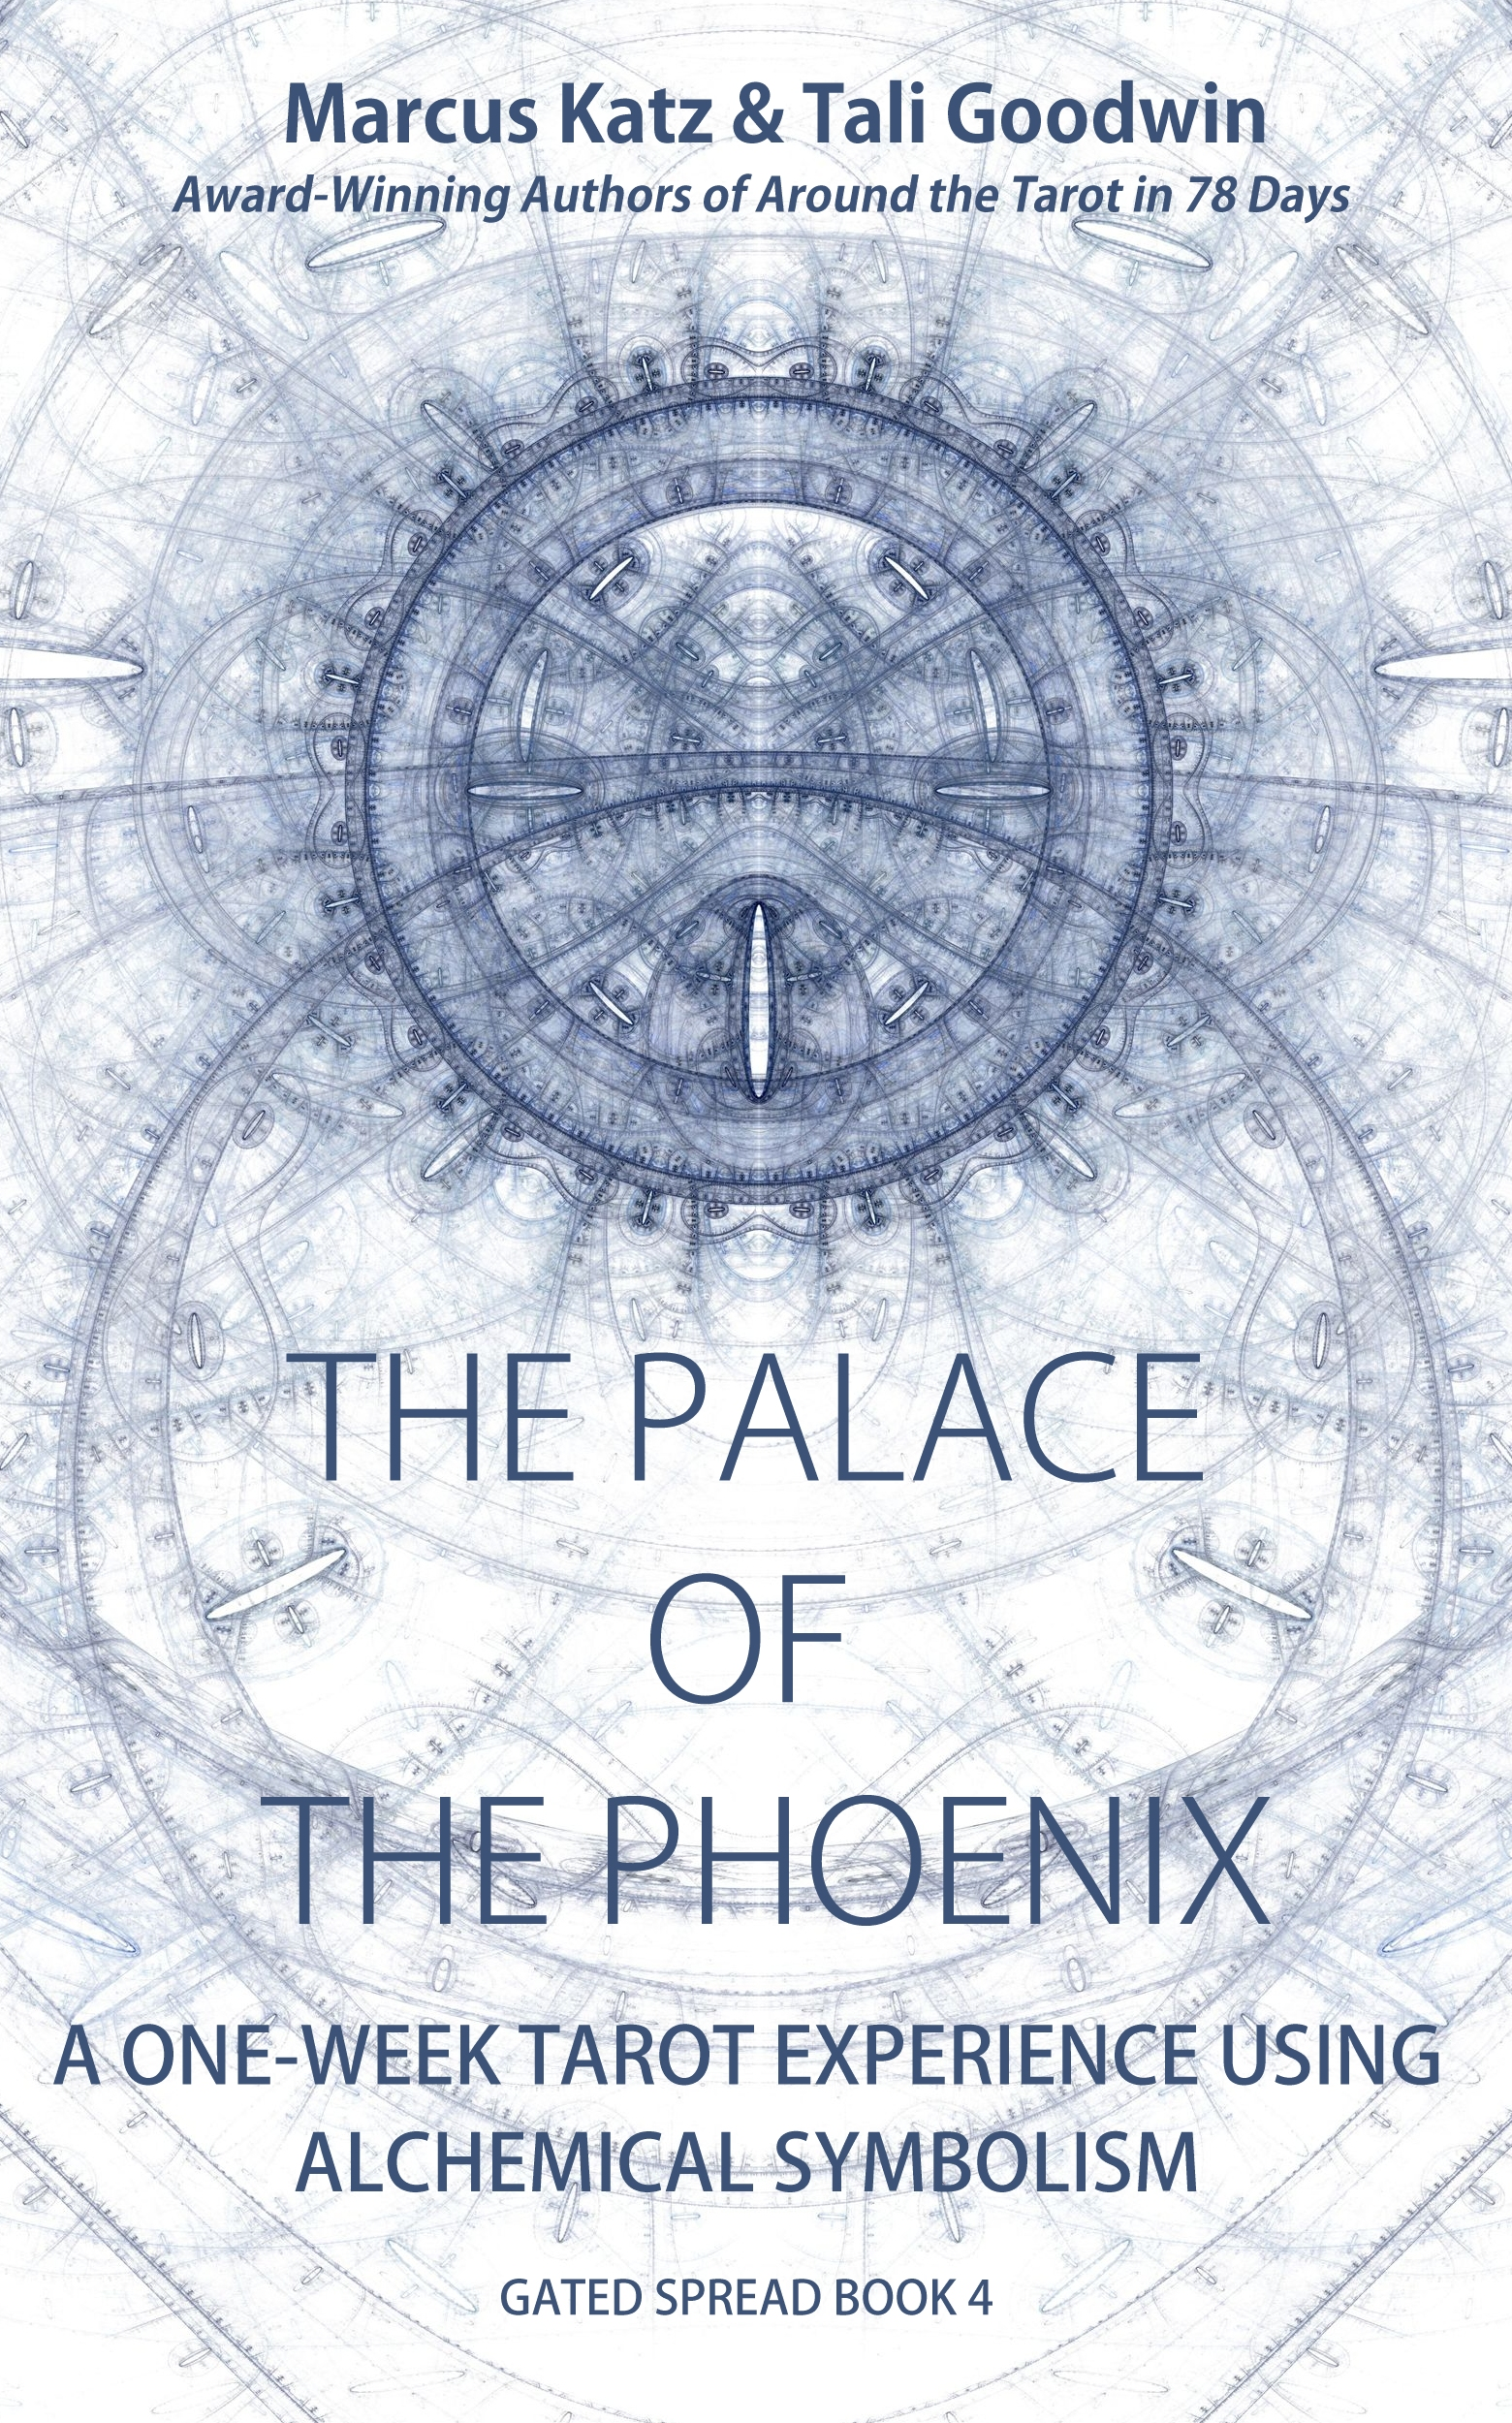 THE PALACE OF THE PHOENIX